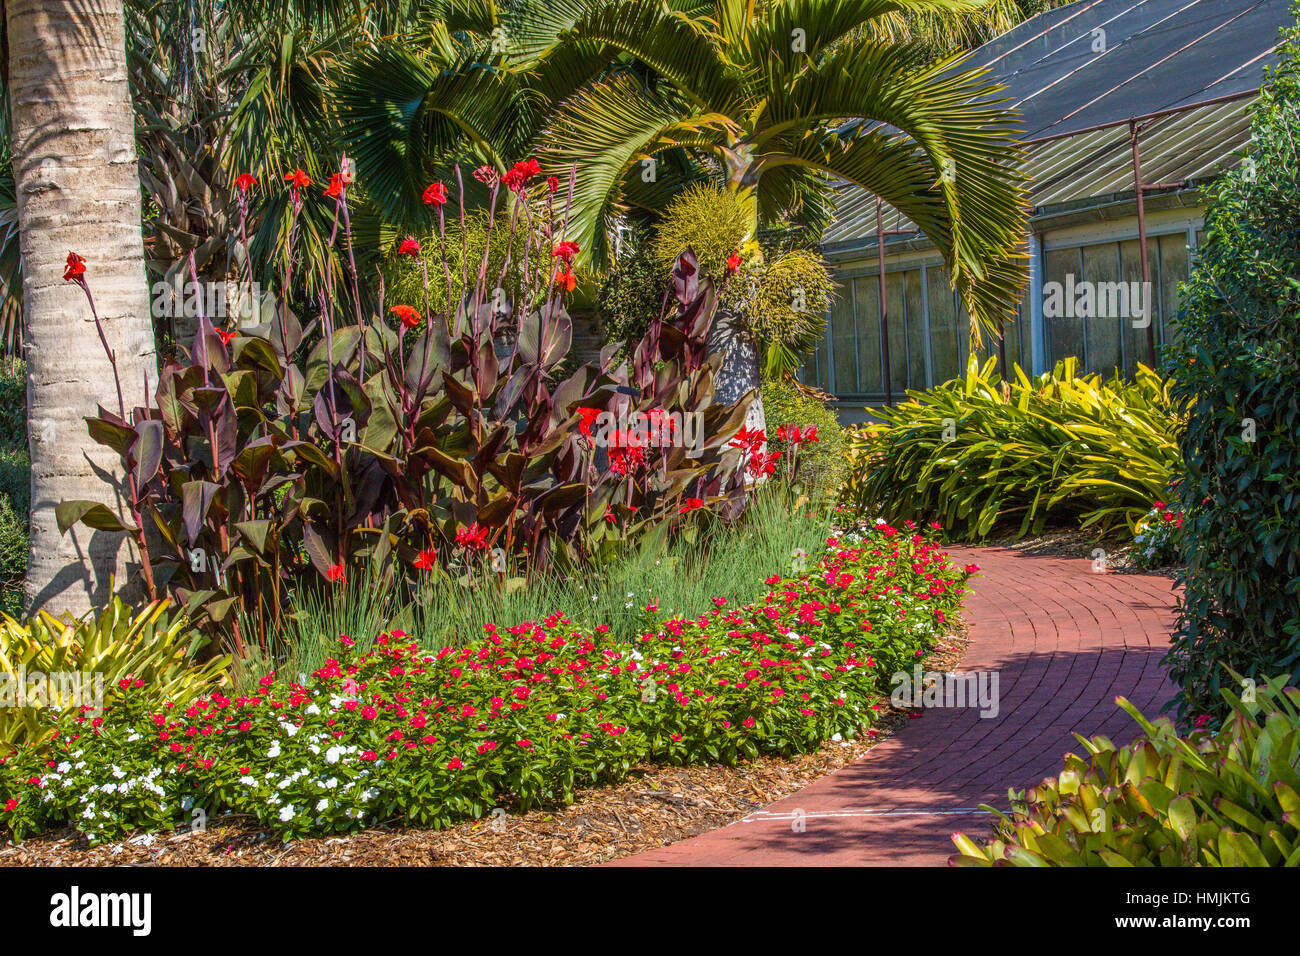 United States Botanical Garden Stock Photos & United States ...